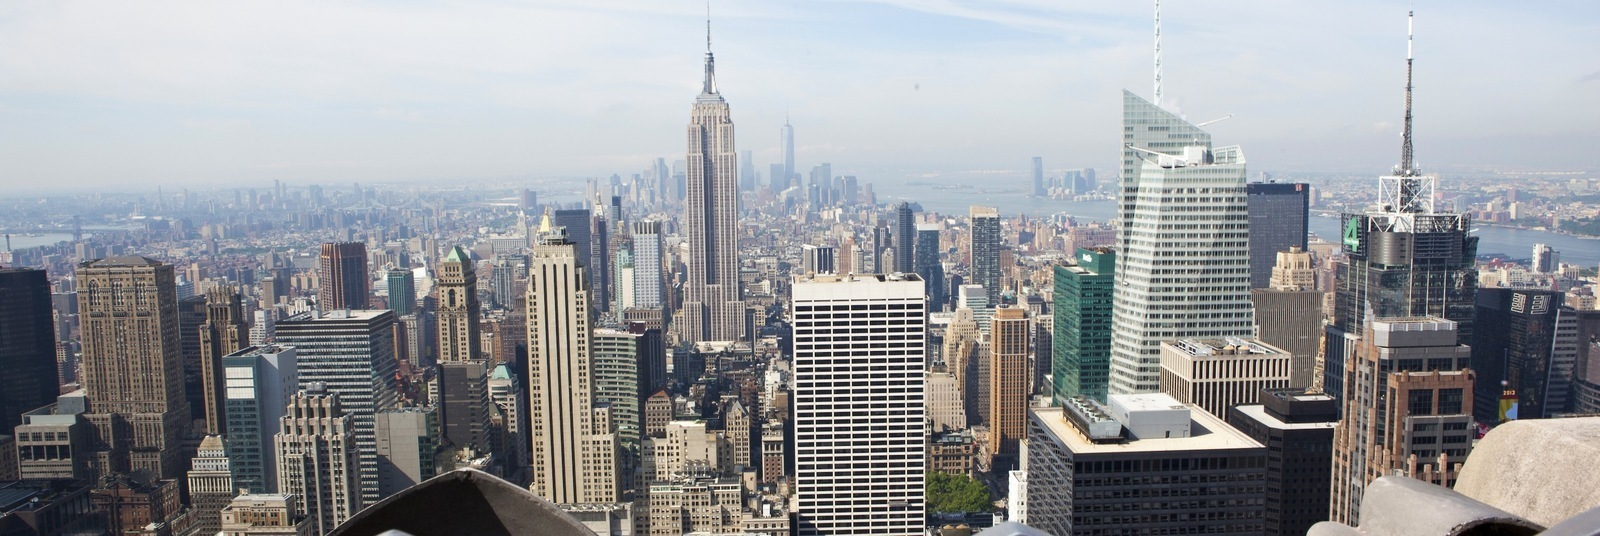 Homepage_large_usa_-_new_york_-_top_of_the_rock__view_of_the_empire_state_building_-_marleywhite__nyc___company